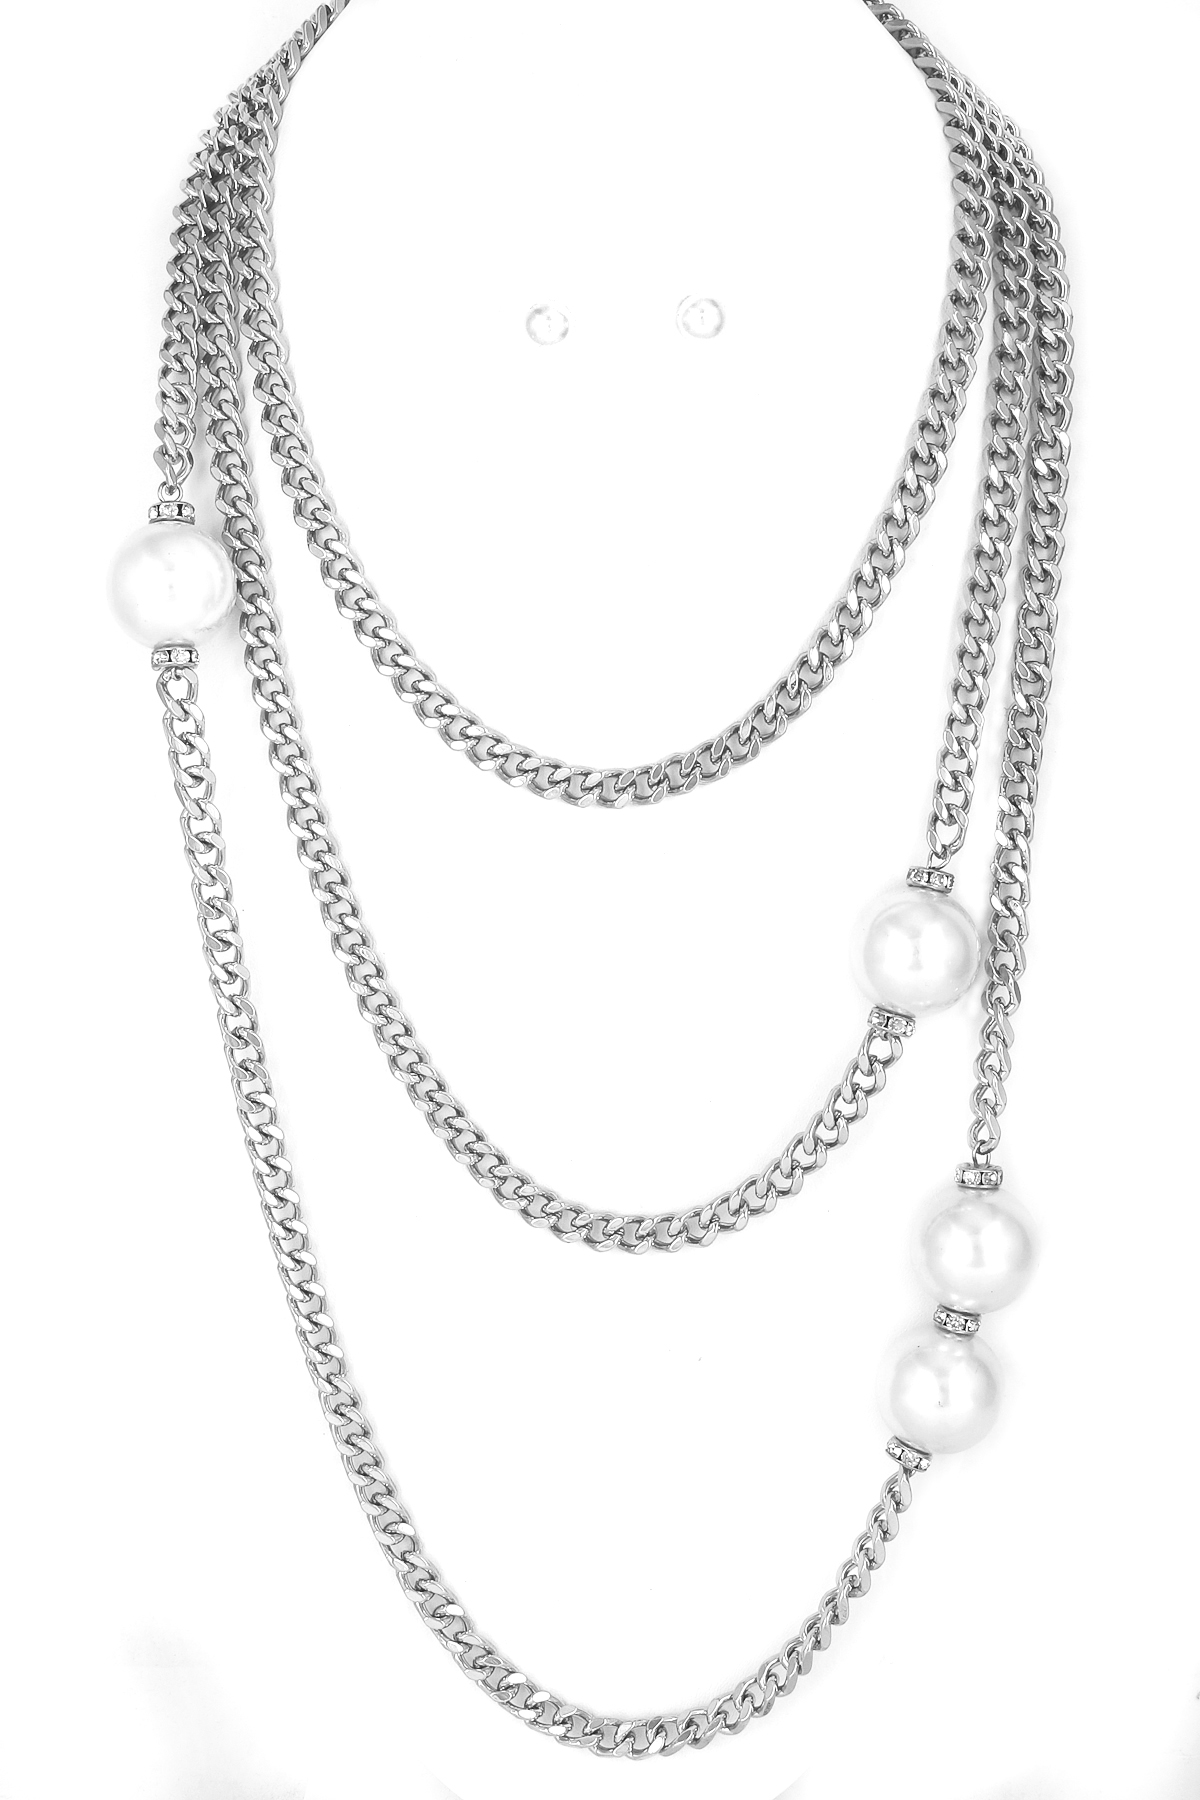 Layered Crystal Rondelle And Pearl Necklace Set